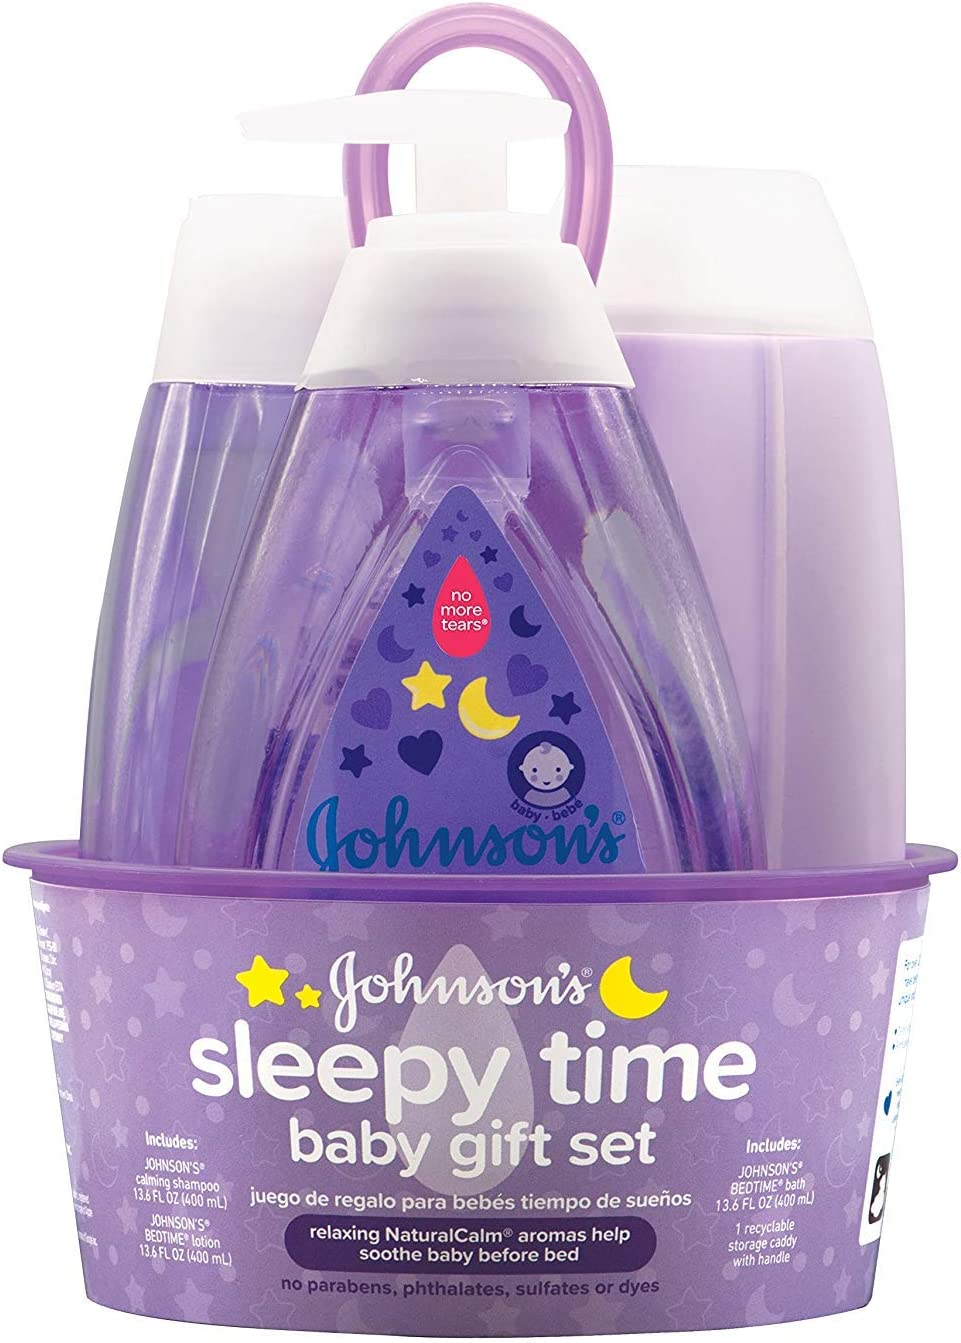 Johnsons Sleepy Time Baby Gift Set with Relaxing NaturalCalm Aromas Bedtime Baby Essentials 4 items Hypoallergenic /& Parben-Free